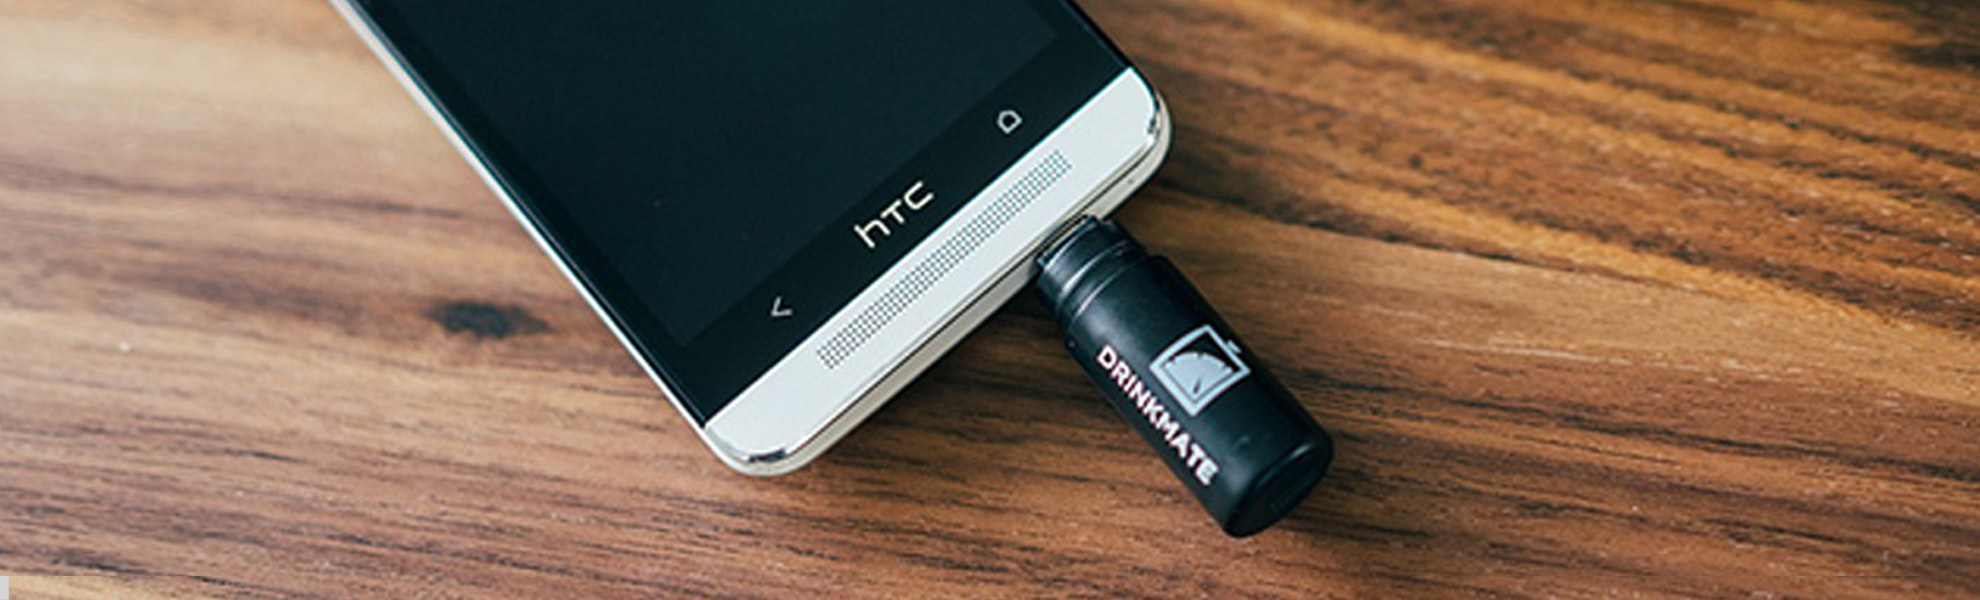 DrinkMate Smartphone Breathalyzer for Android/IOS